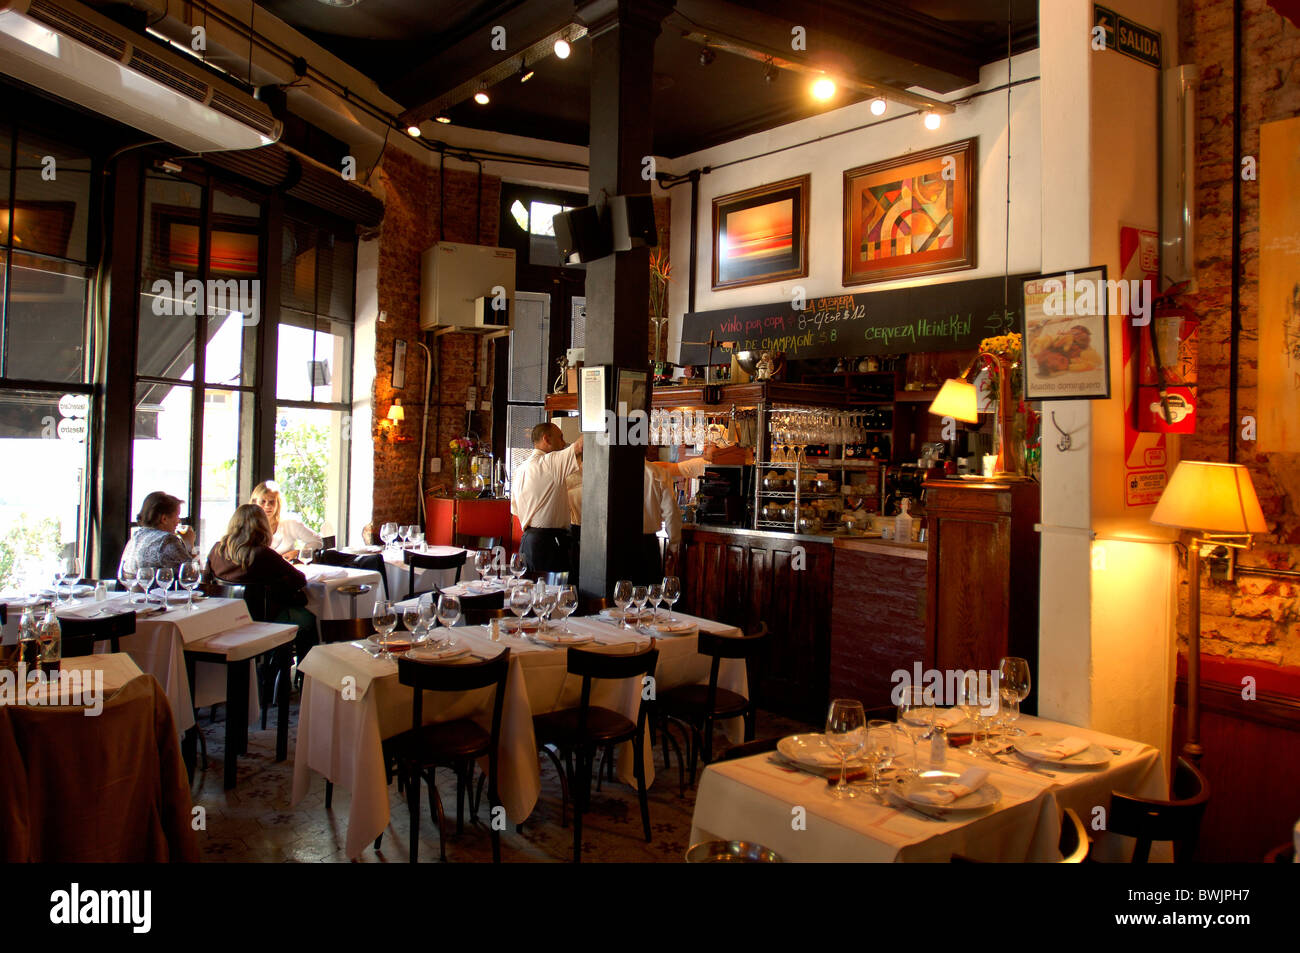 La Cabrera restaurant inside guests company catering trade Palermo Buenos Aires Argentina South America - Stock Image